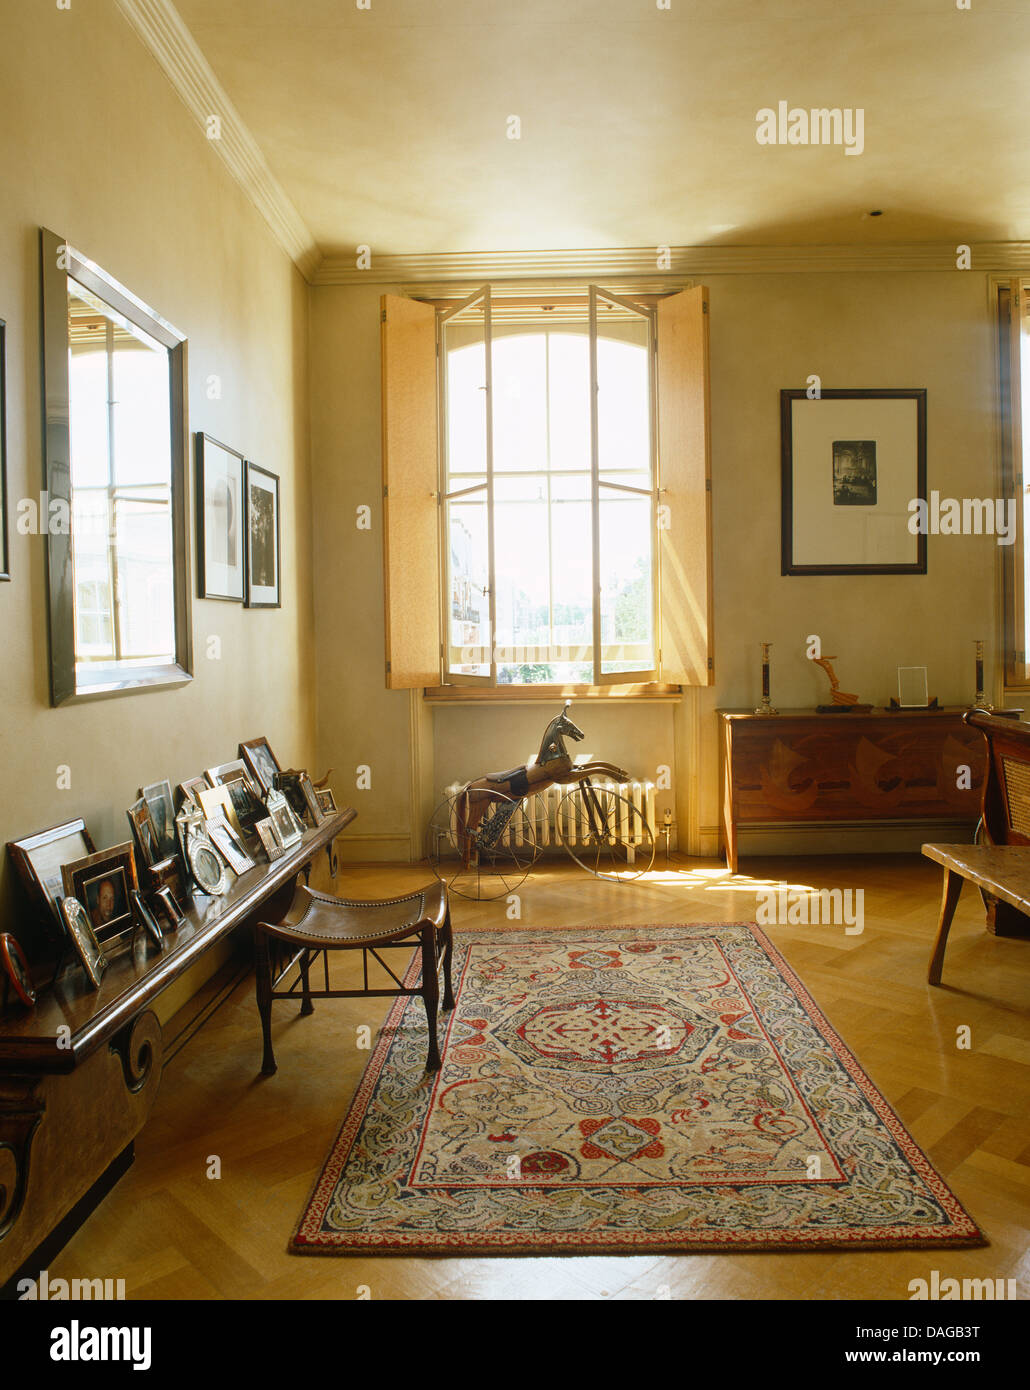 Shutters on window above metal horse in bedroom with patterned rug on parquet floor Stock Photo